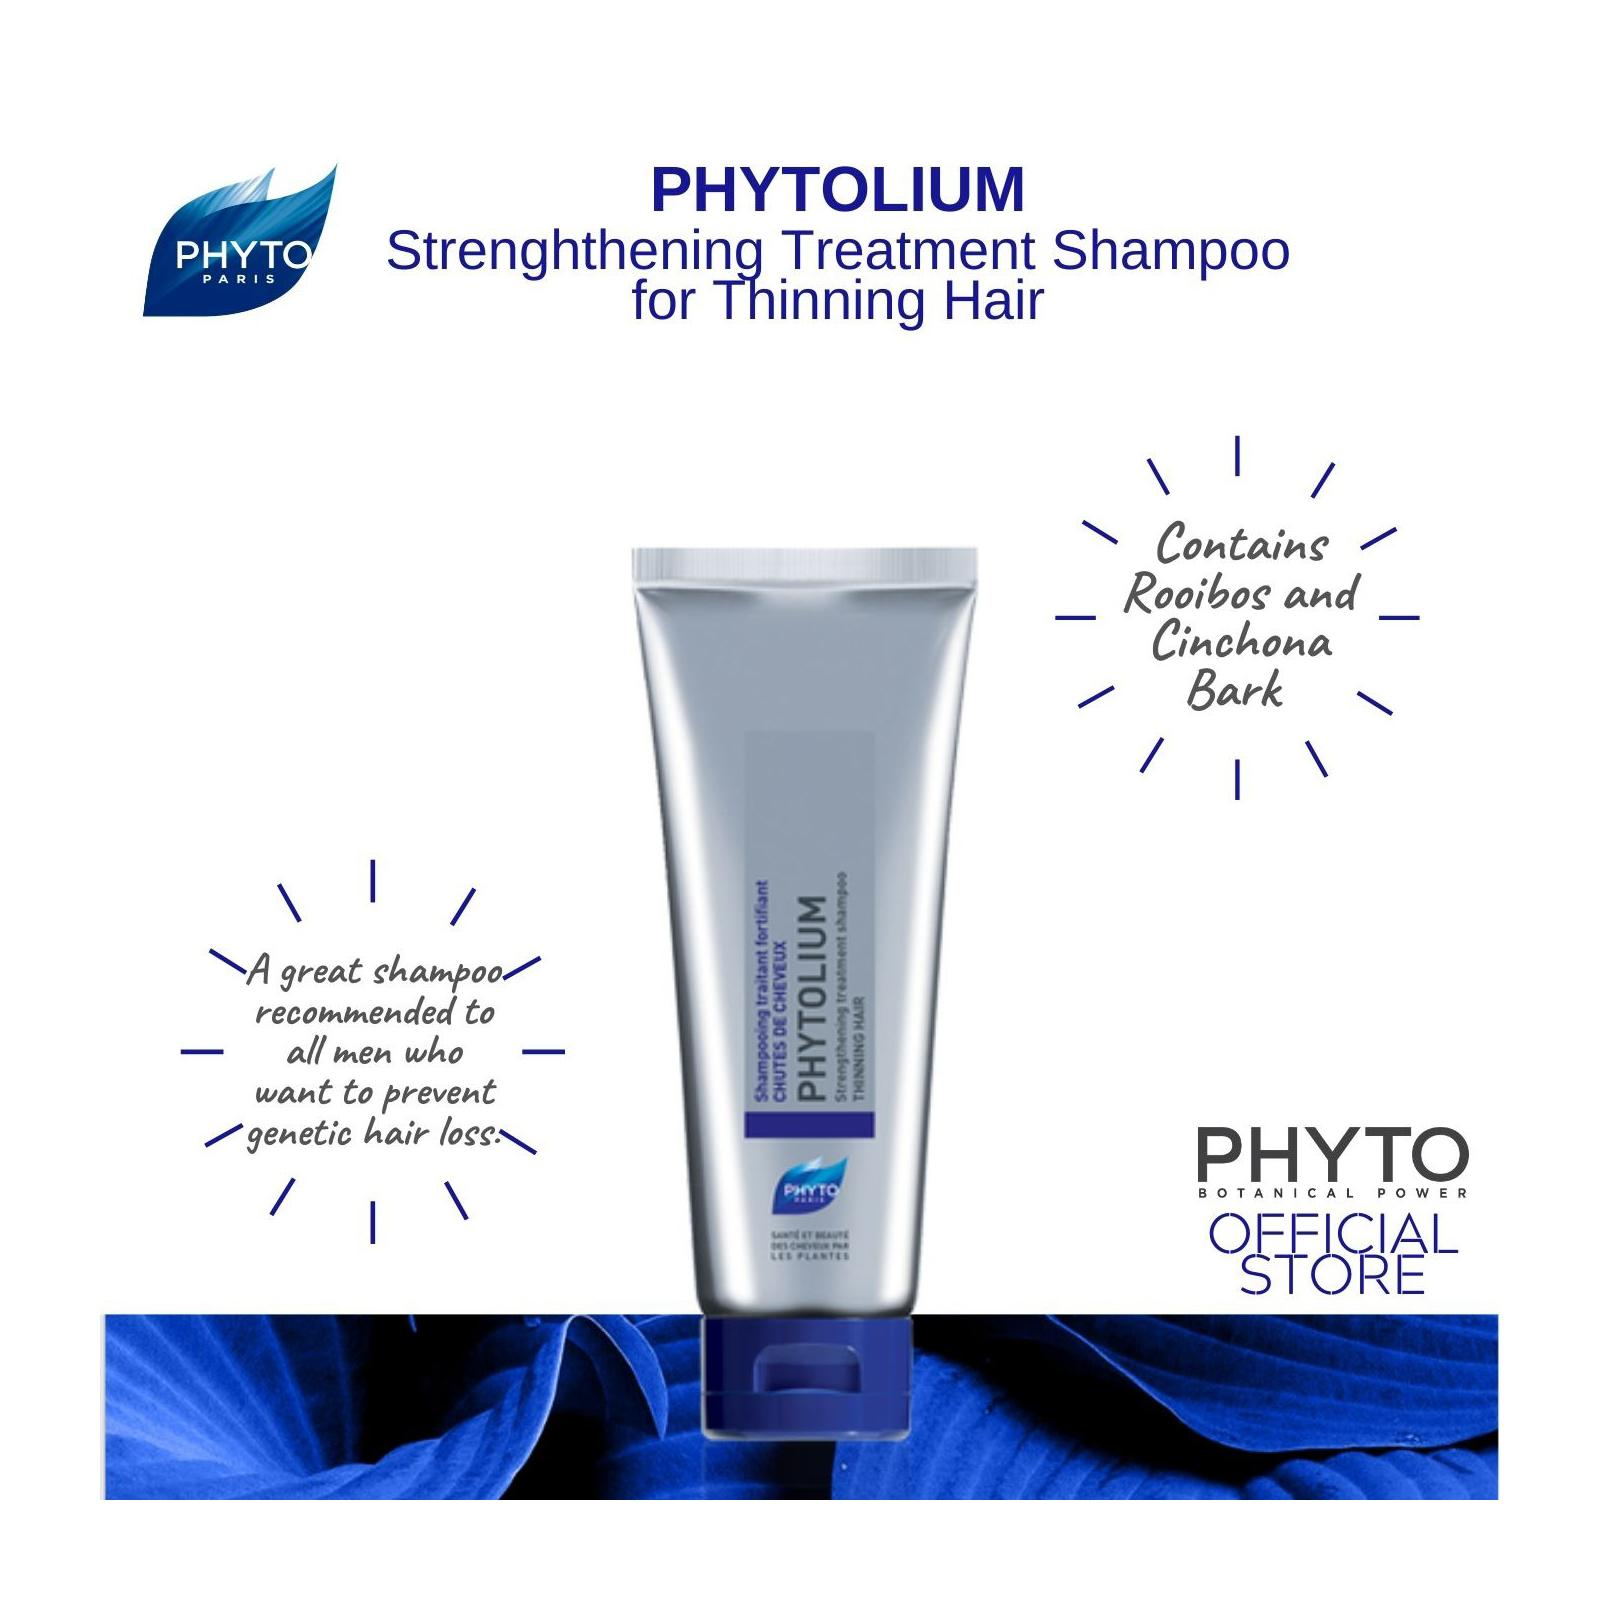 Phyto Phytolium Strengthening Hair Loss Treatment Shampoo